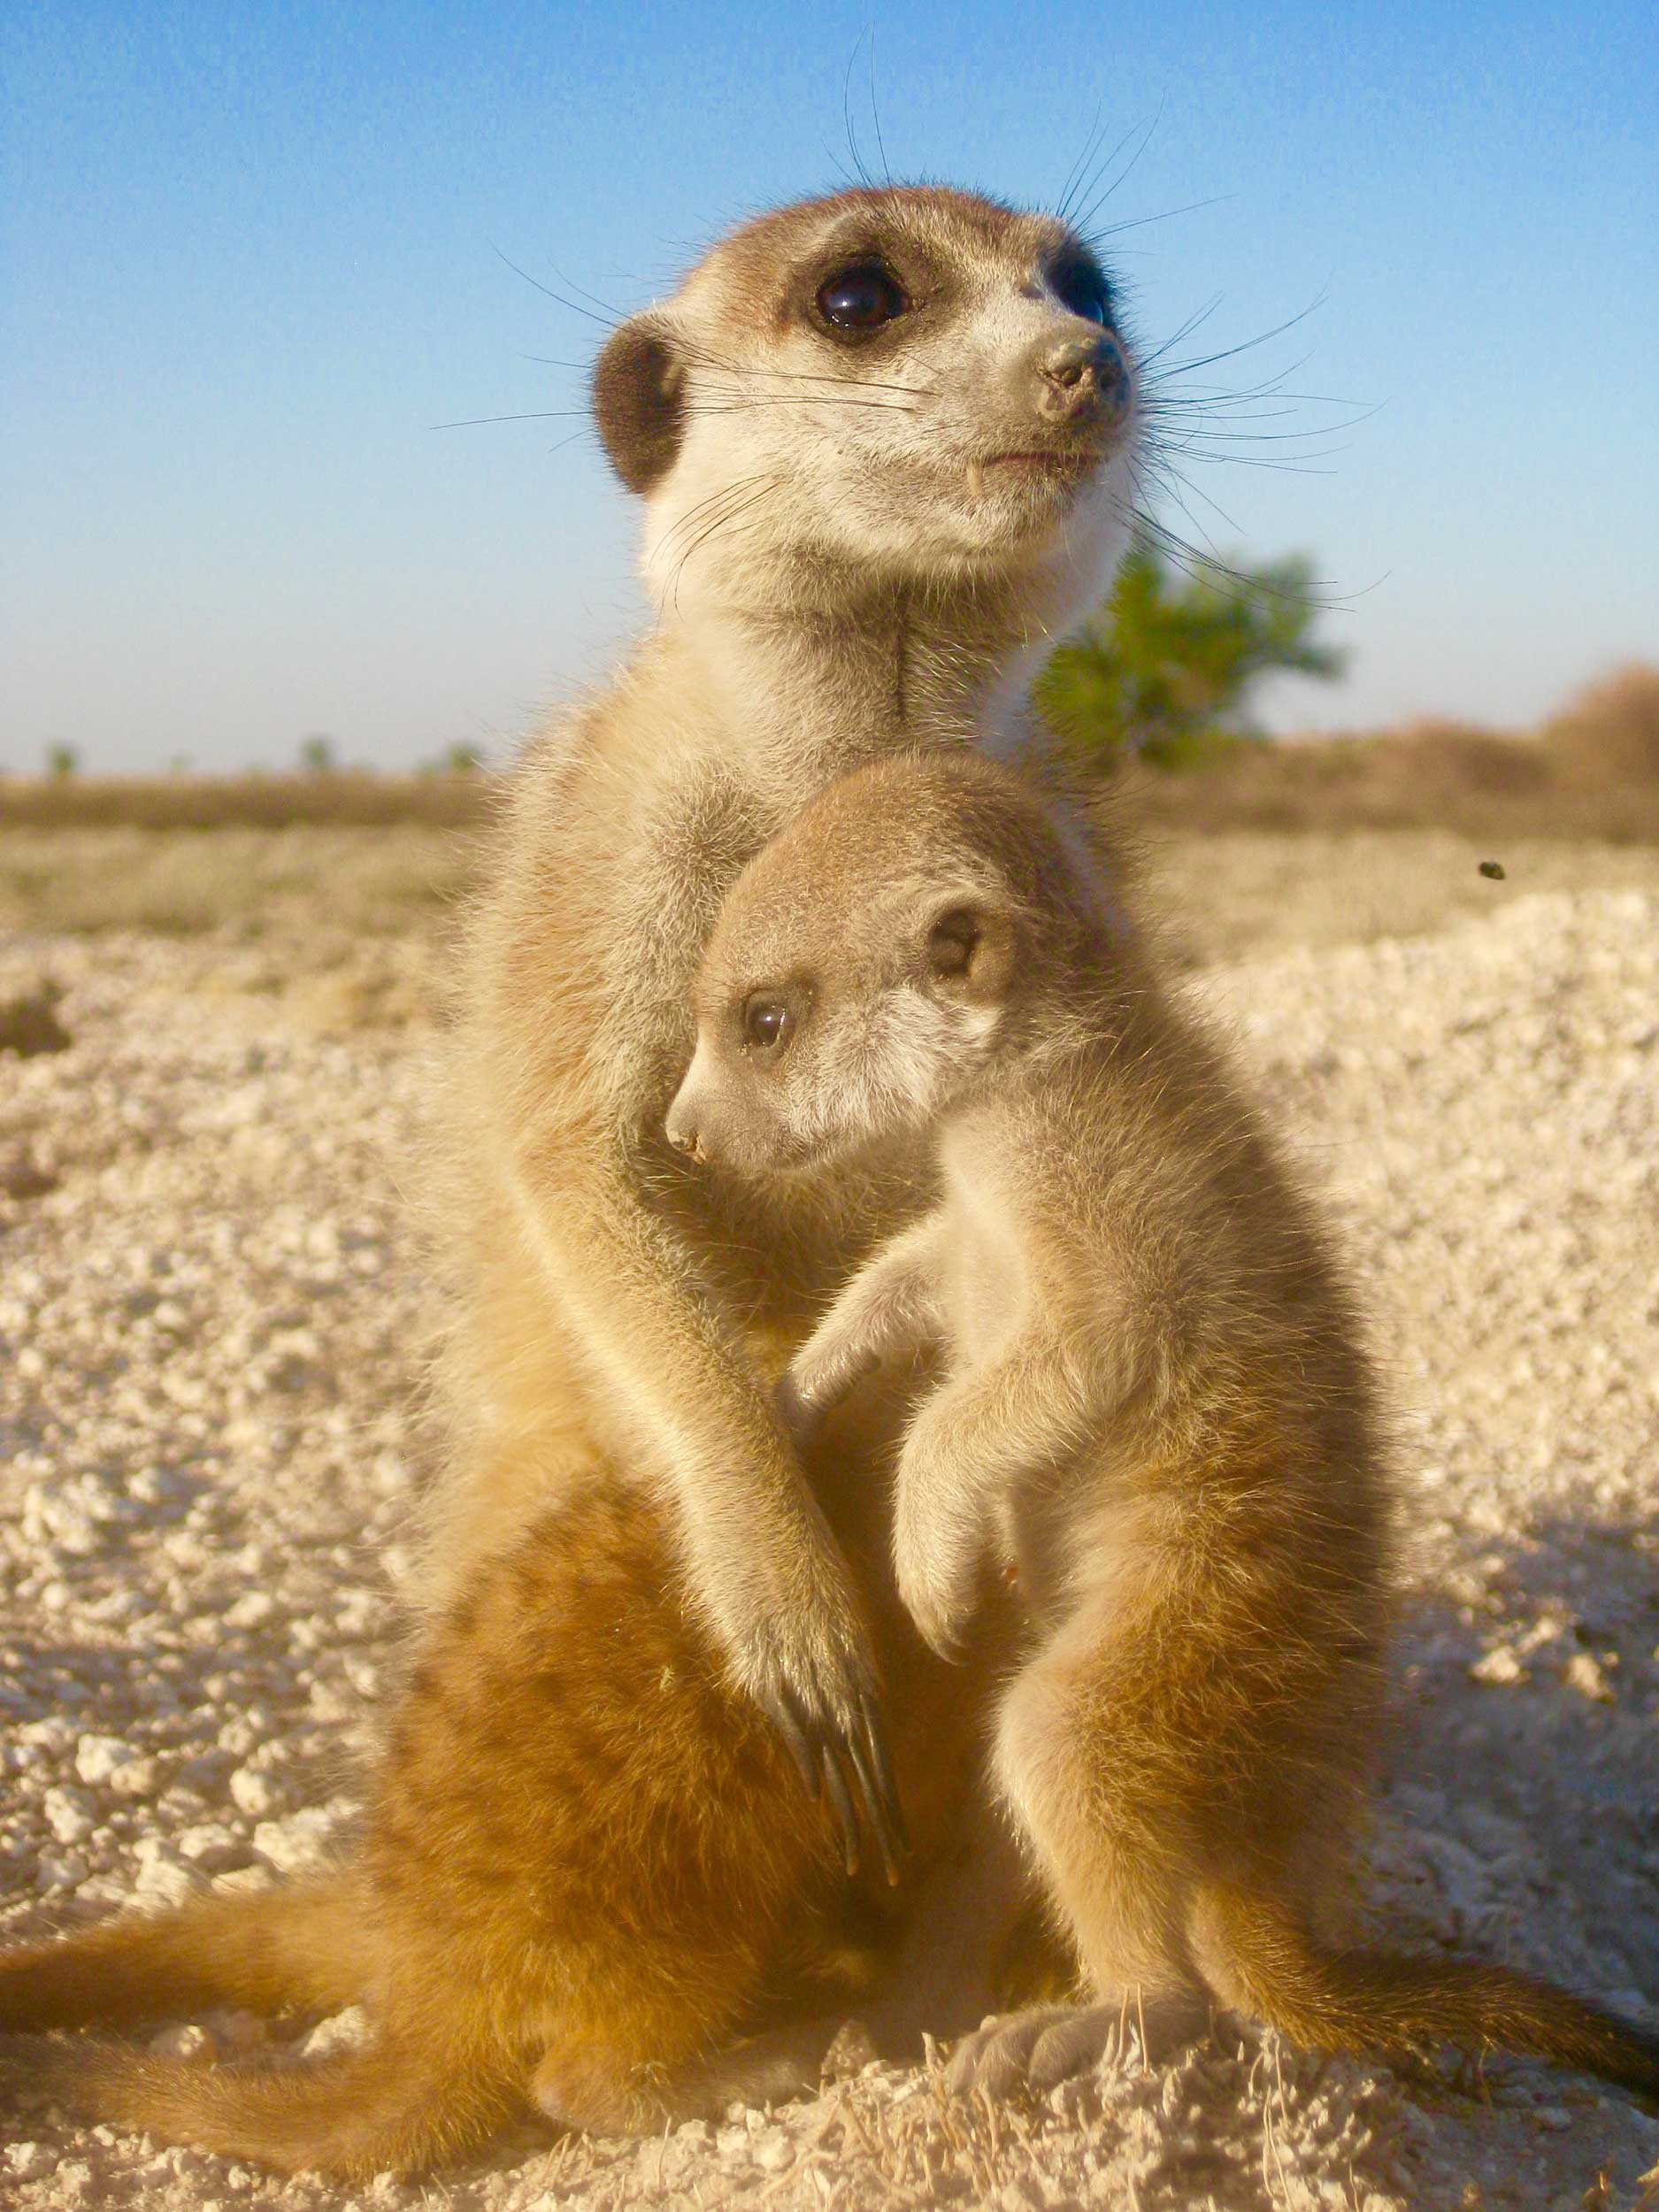 A mother and baby meerkat. Image credit: Ben Dantzer